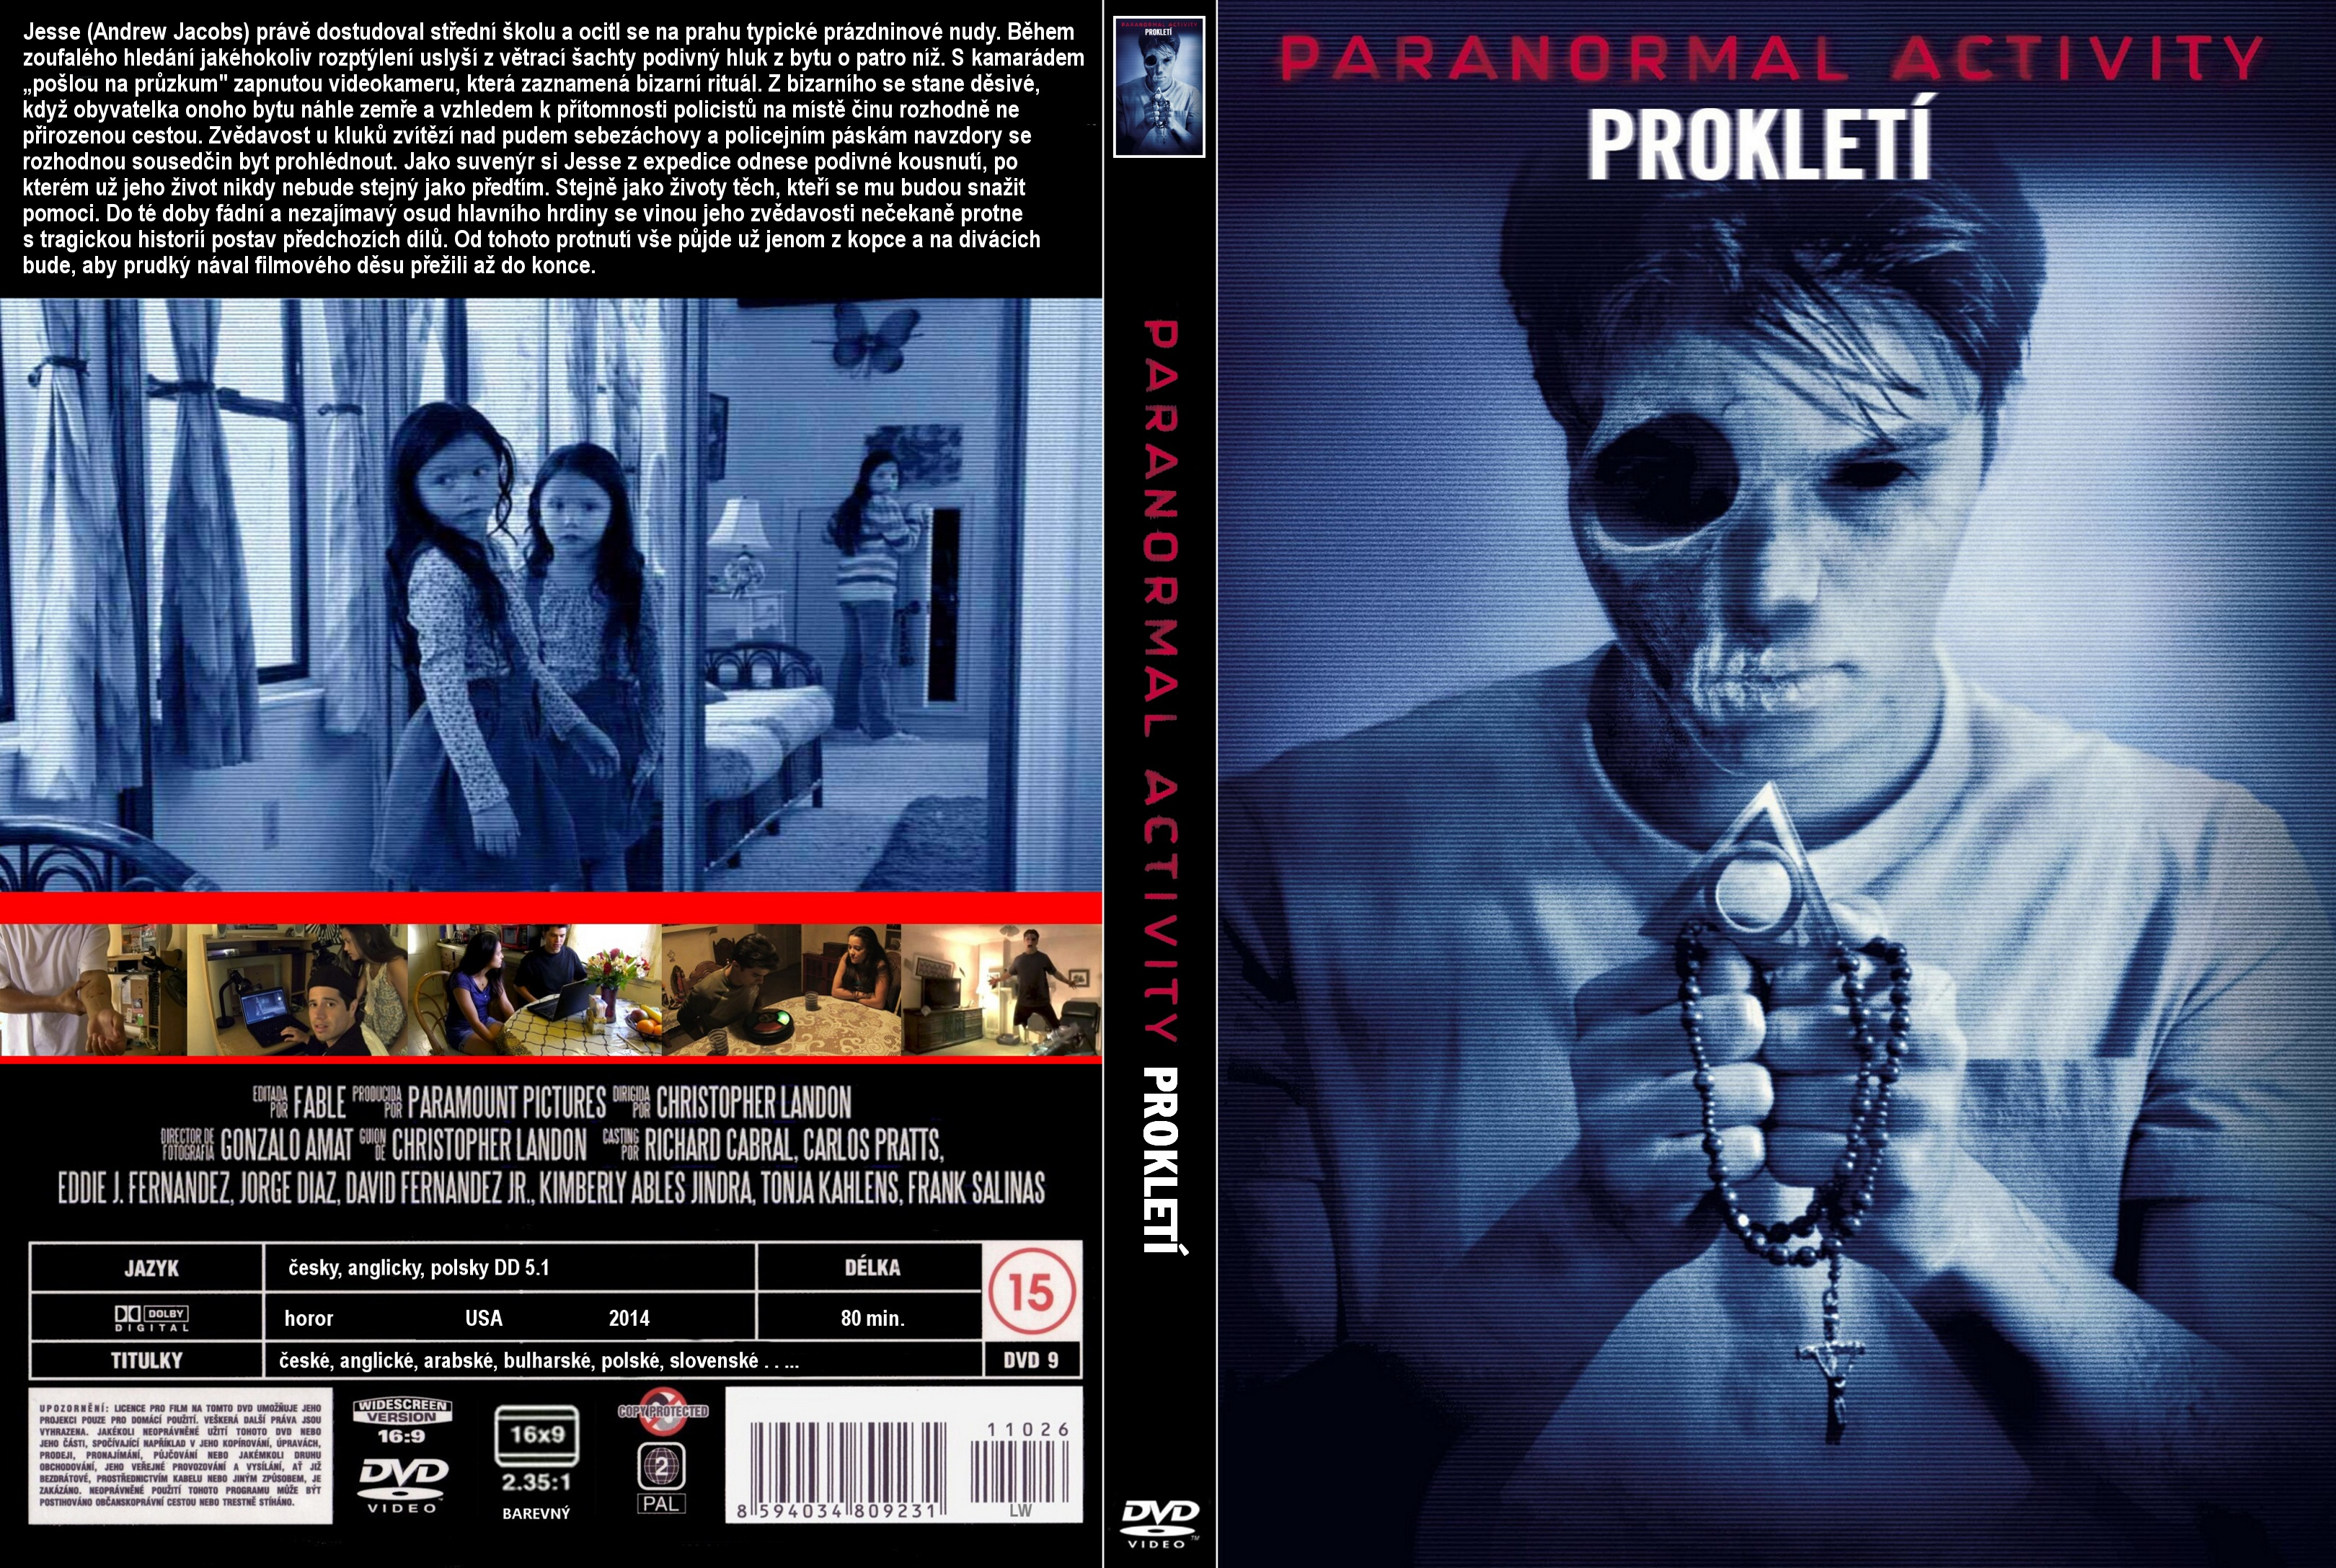 paranormal activity marked ones dvd cover - photo #5